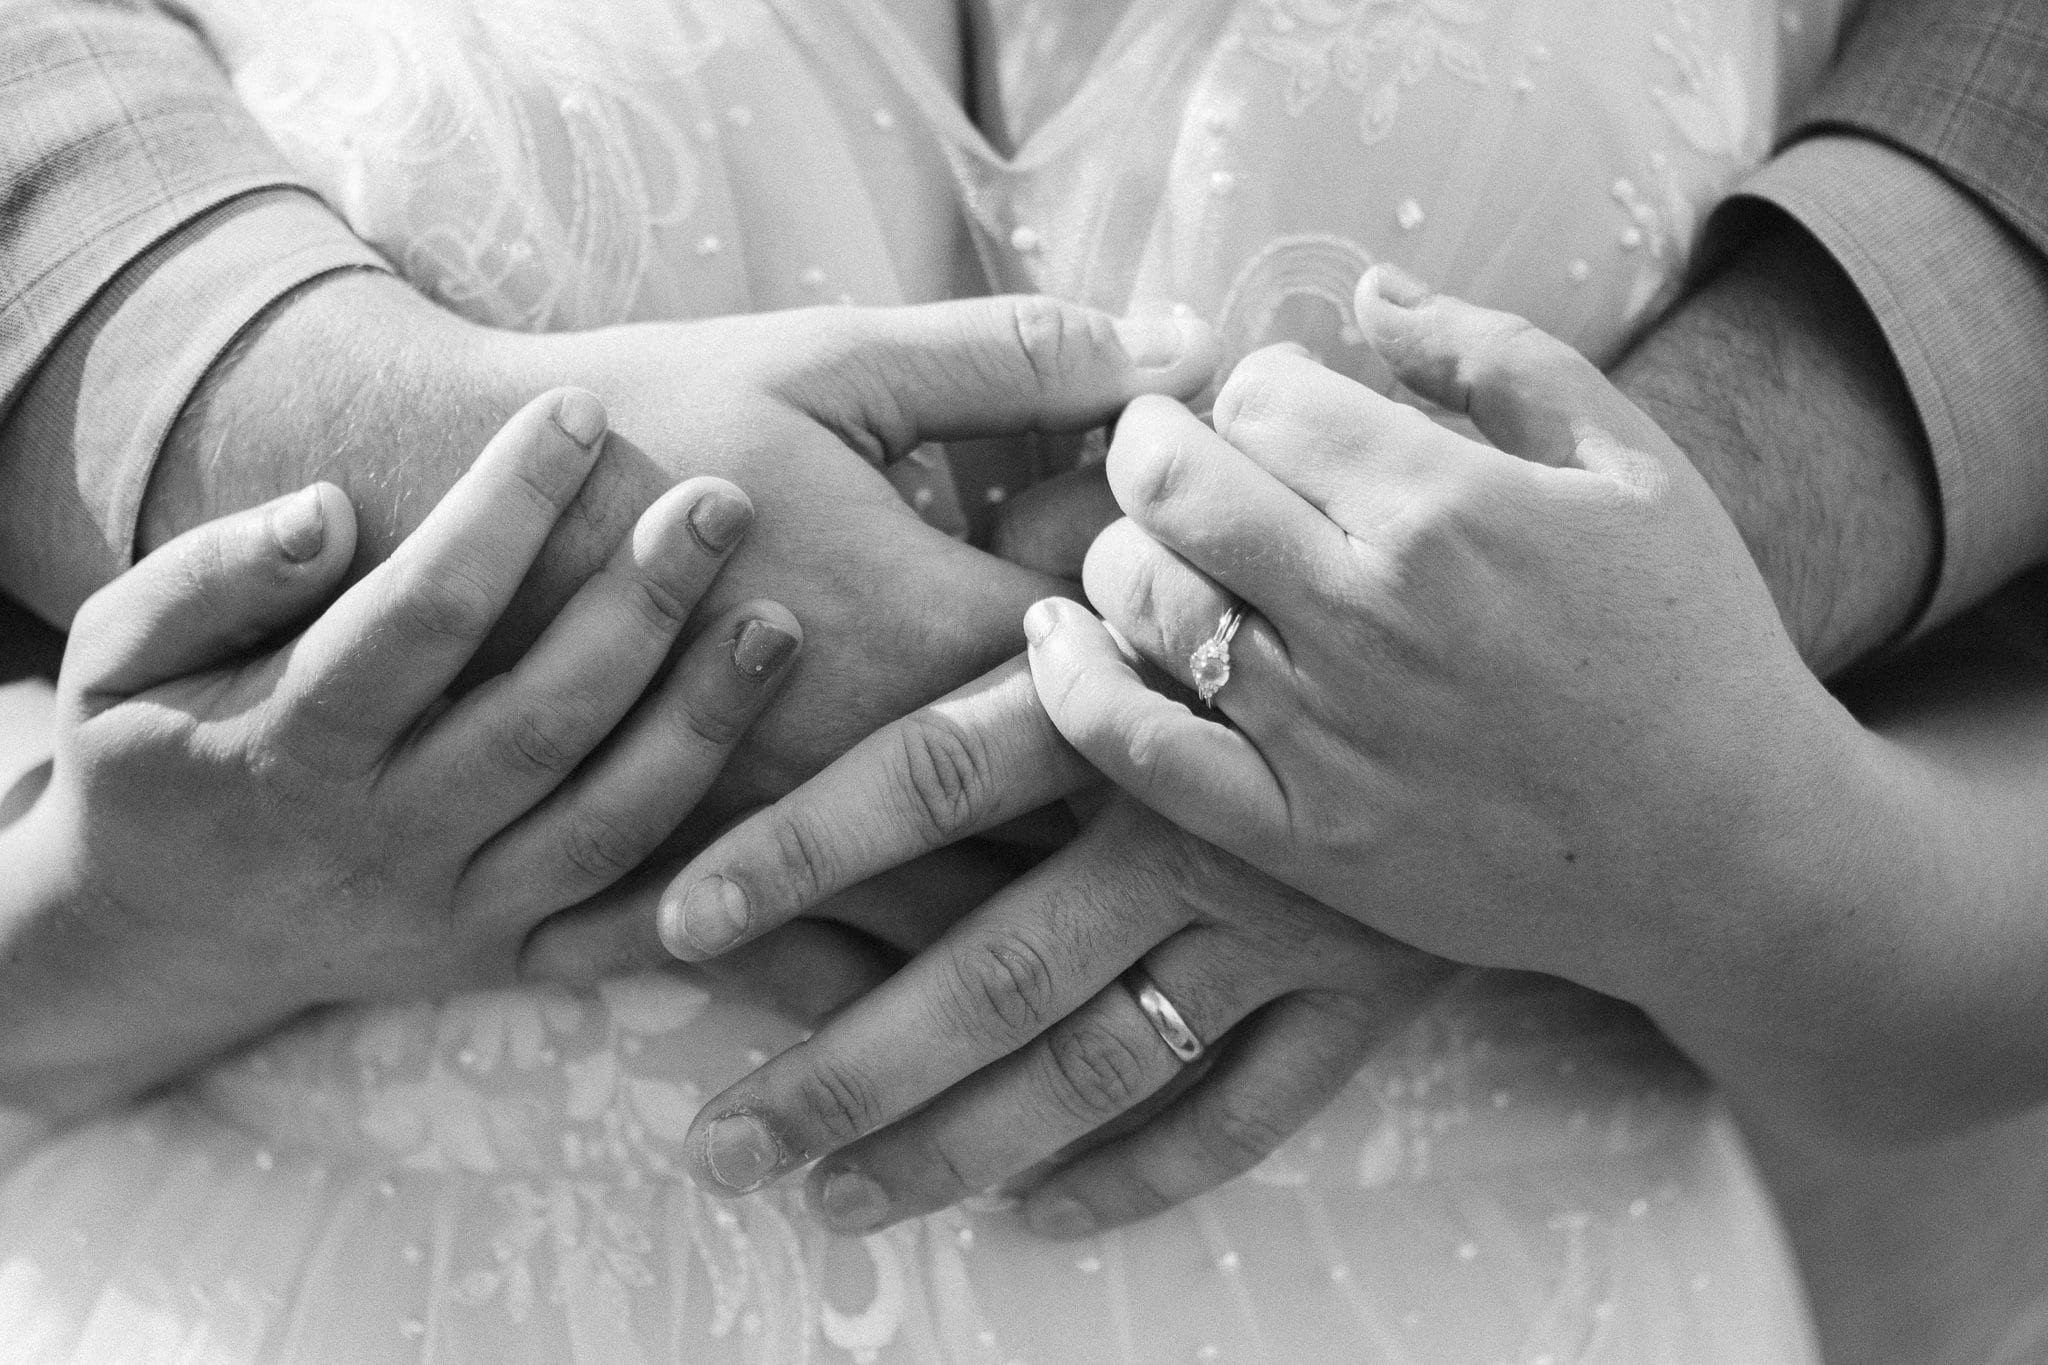 Close up of bride and groom's hands with wedding rings